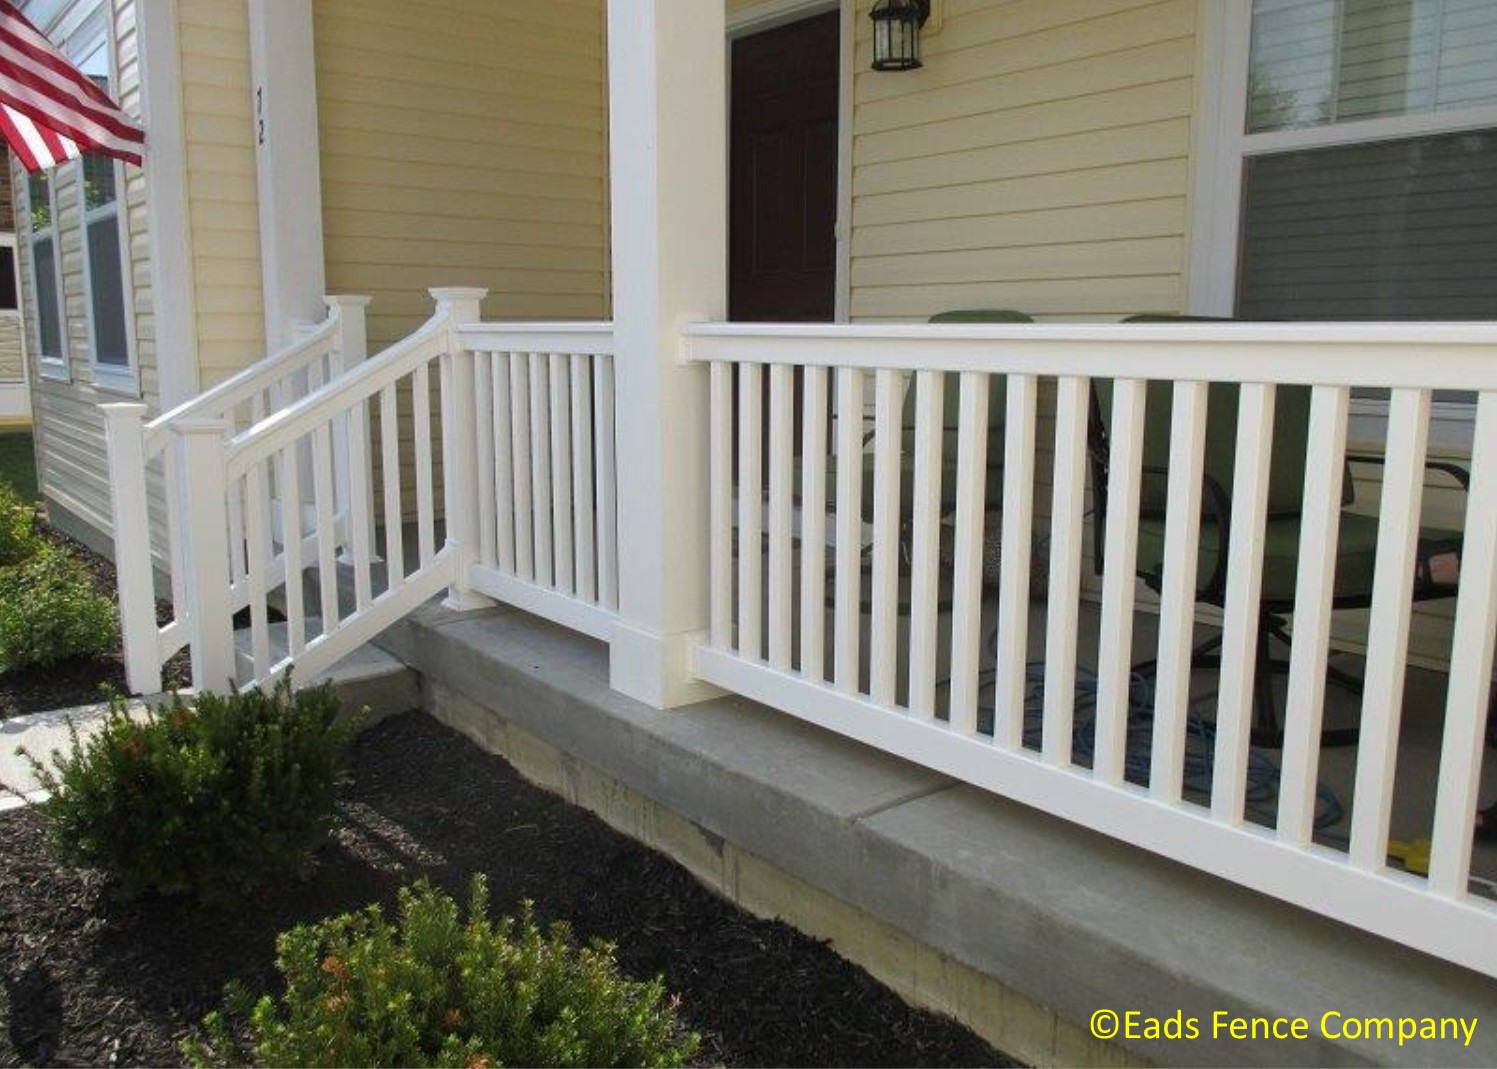 Show products in category Railings & Handrails